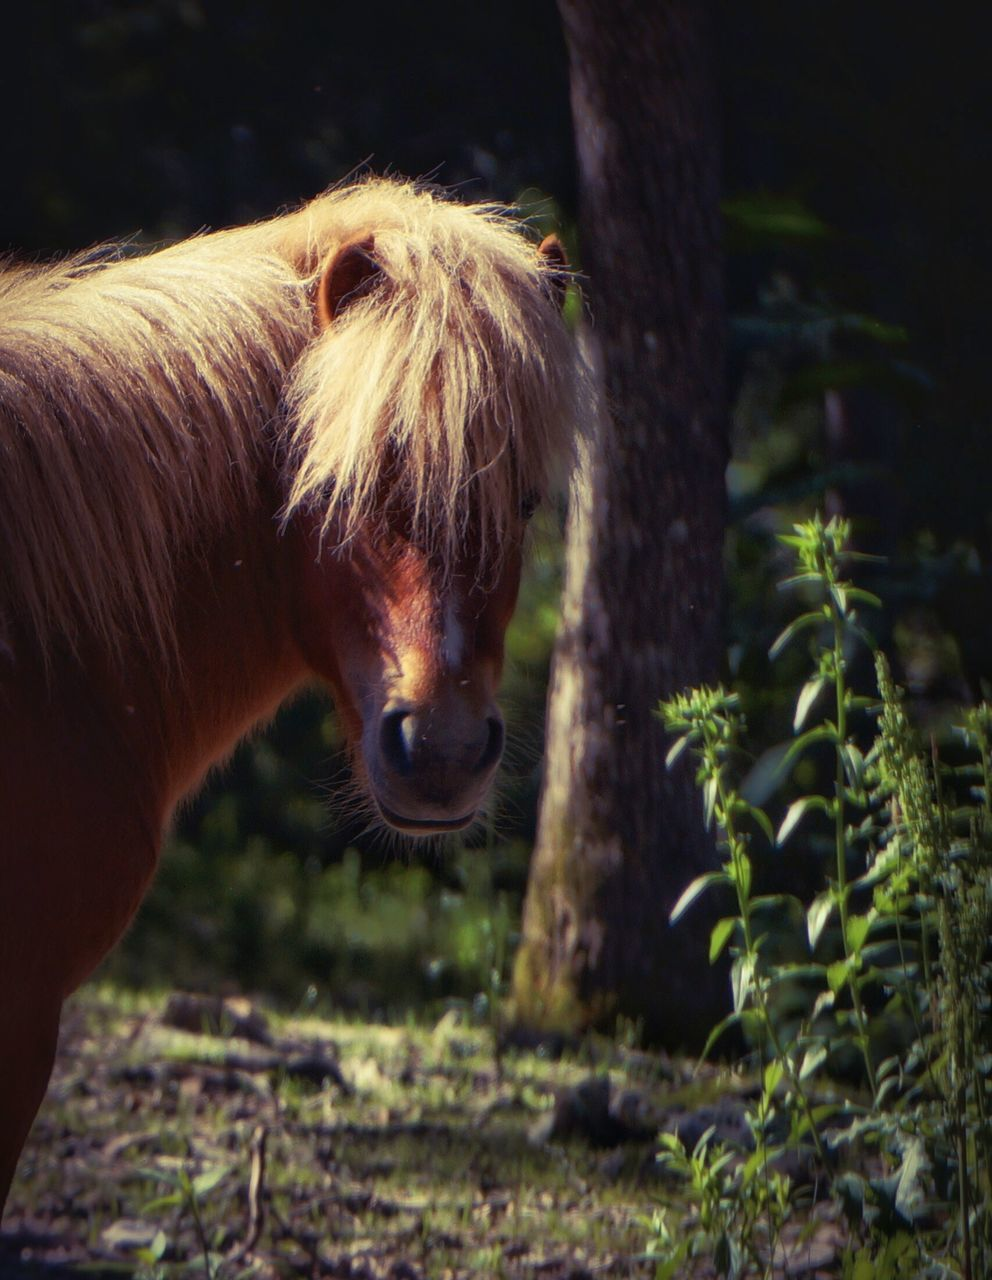 horse, domestic animals, animal themes, mammal, one animal, livestock, herbivorous, outdoors, day, standing, no people, nature, tree, close-up